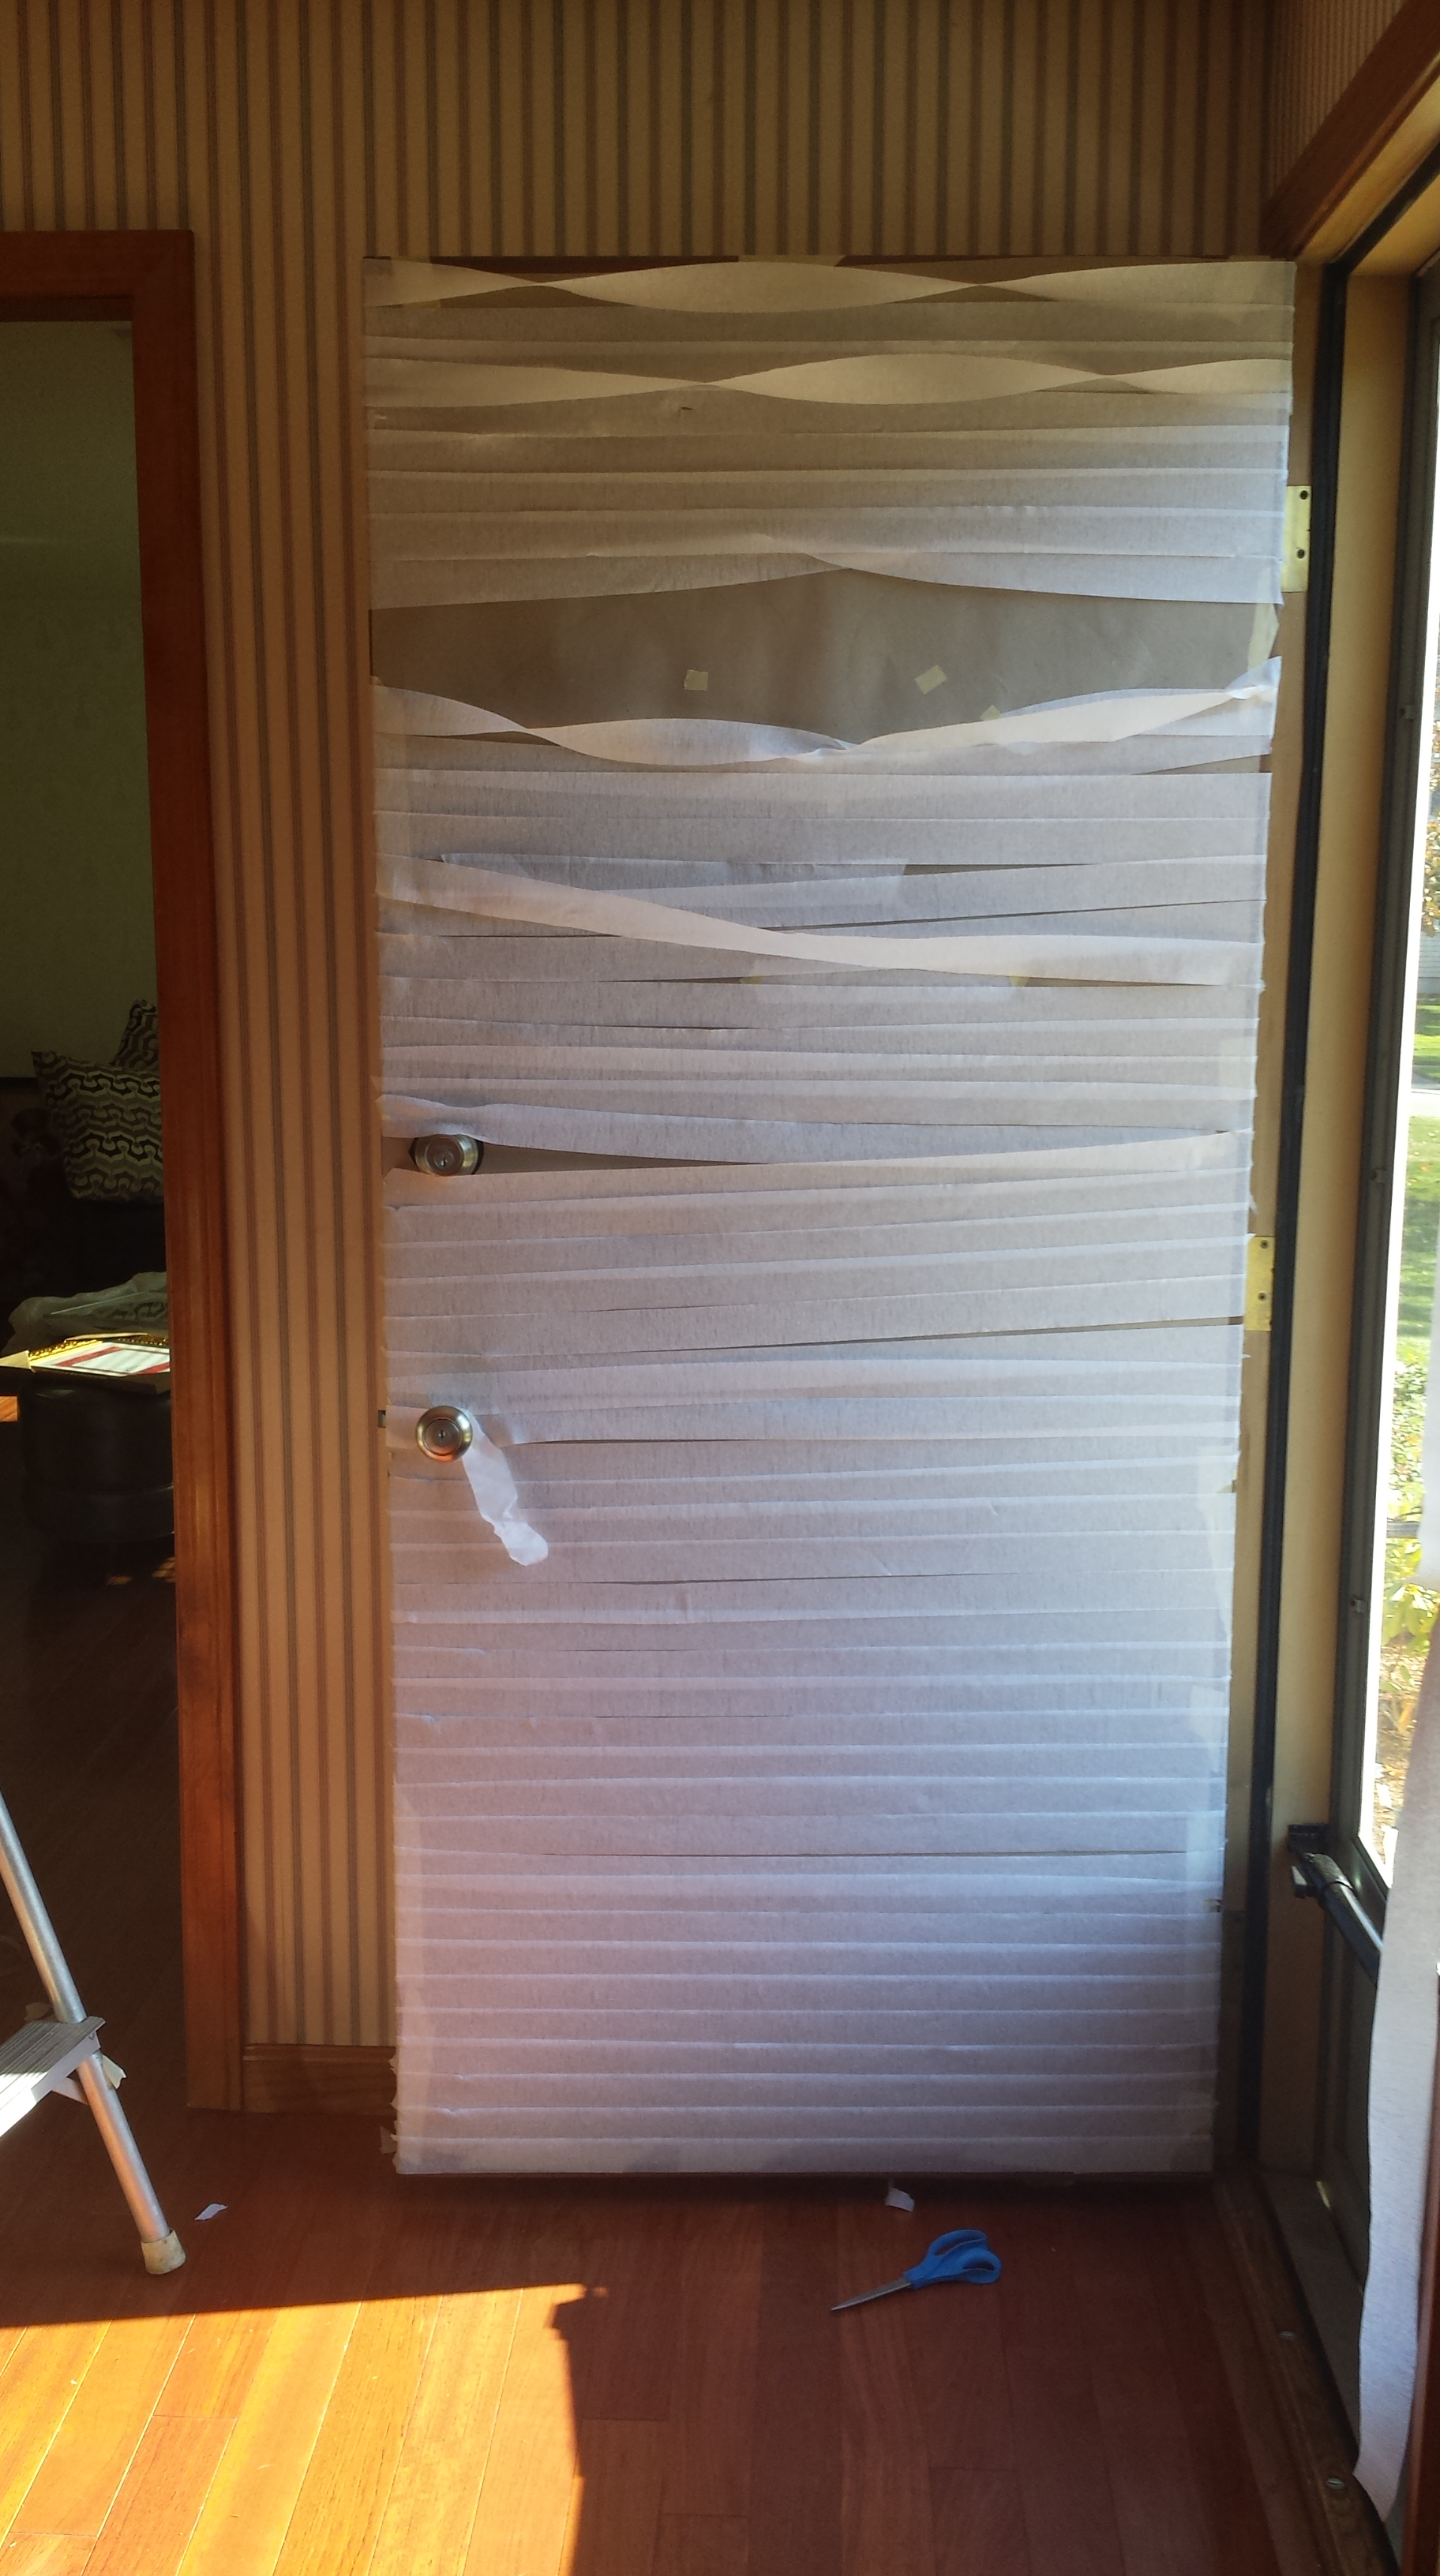 Continue taping the strips to the entire door. & Mummy Door | The Vintage Spruce pezcame.com